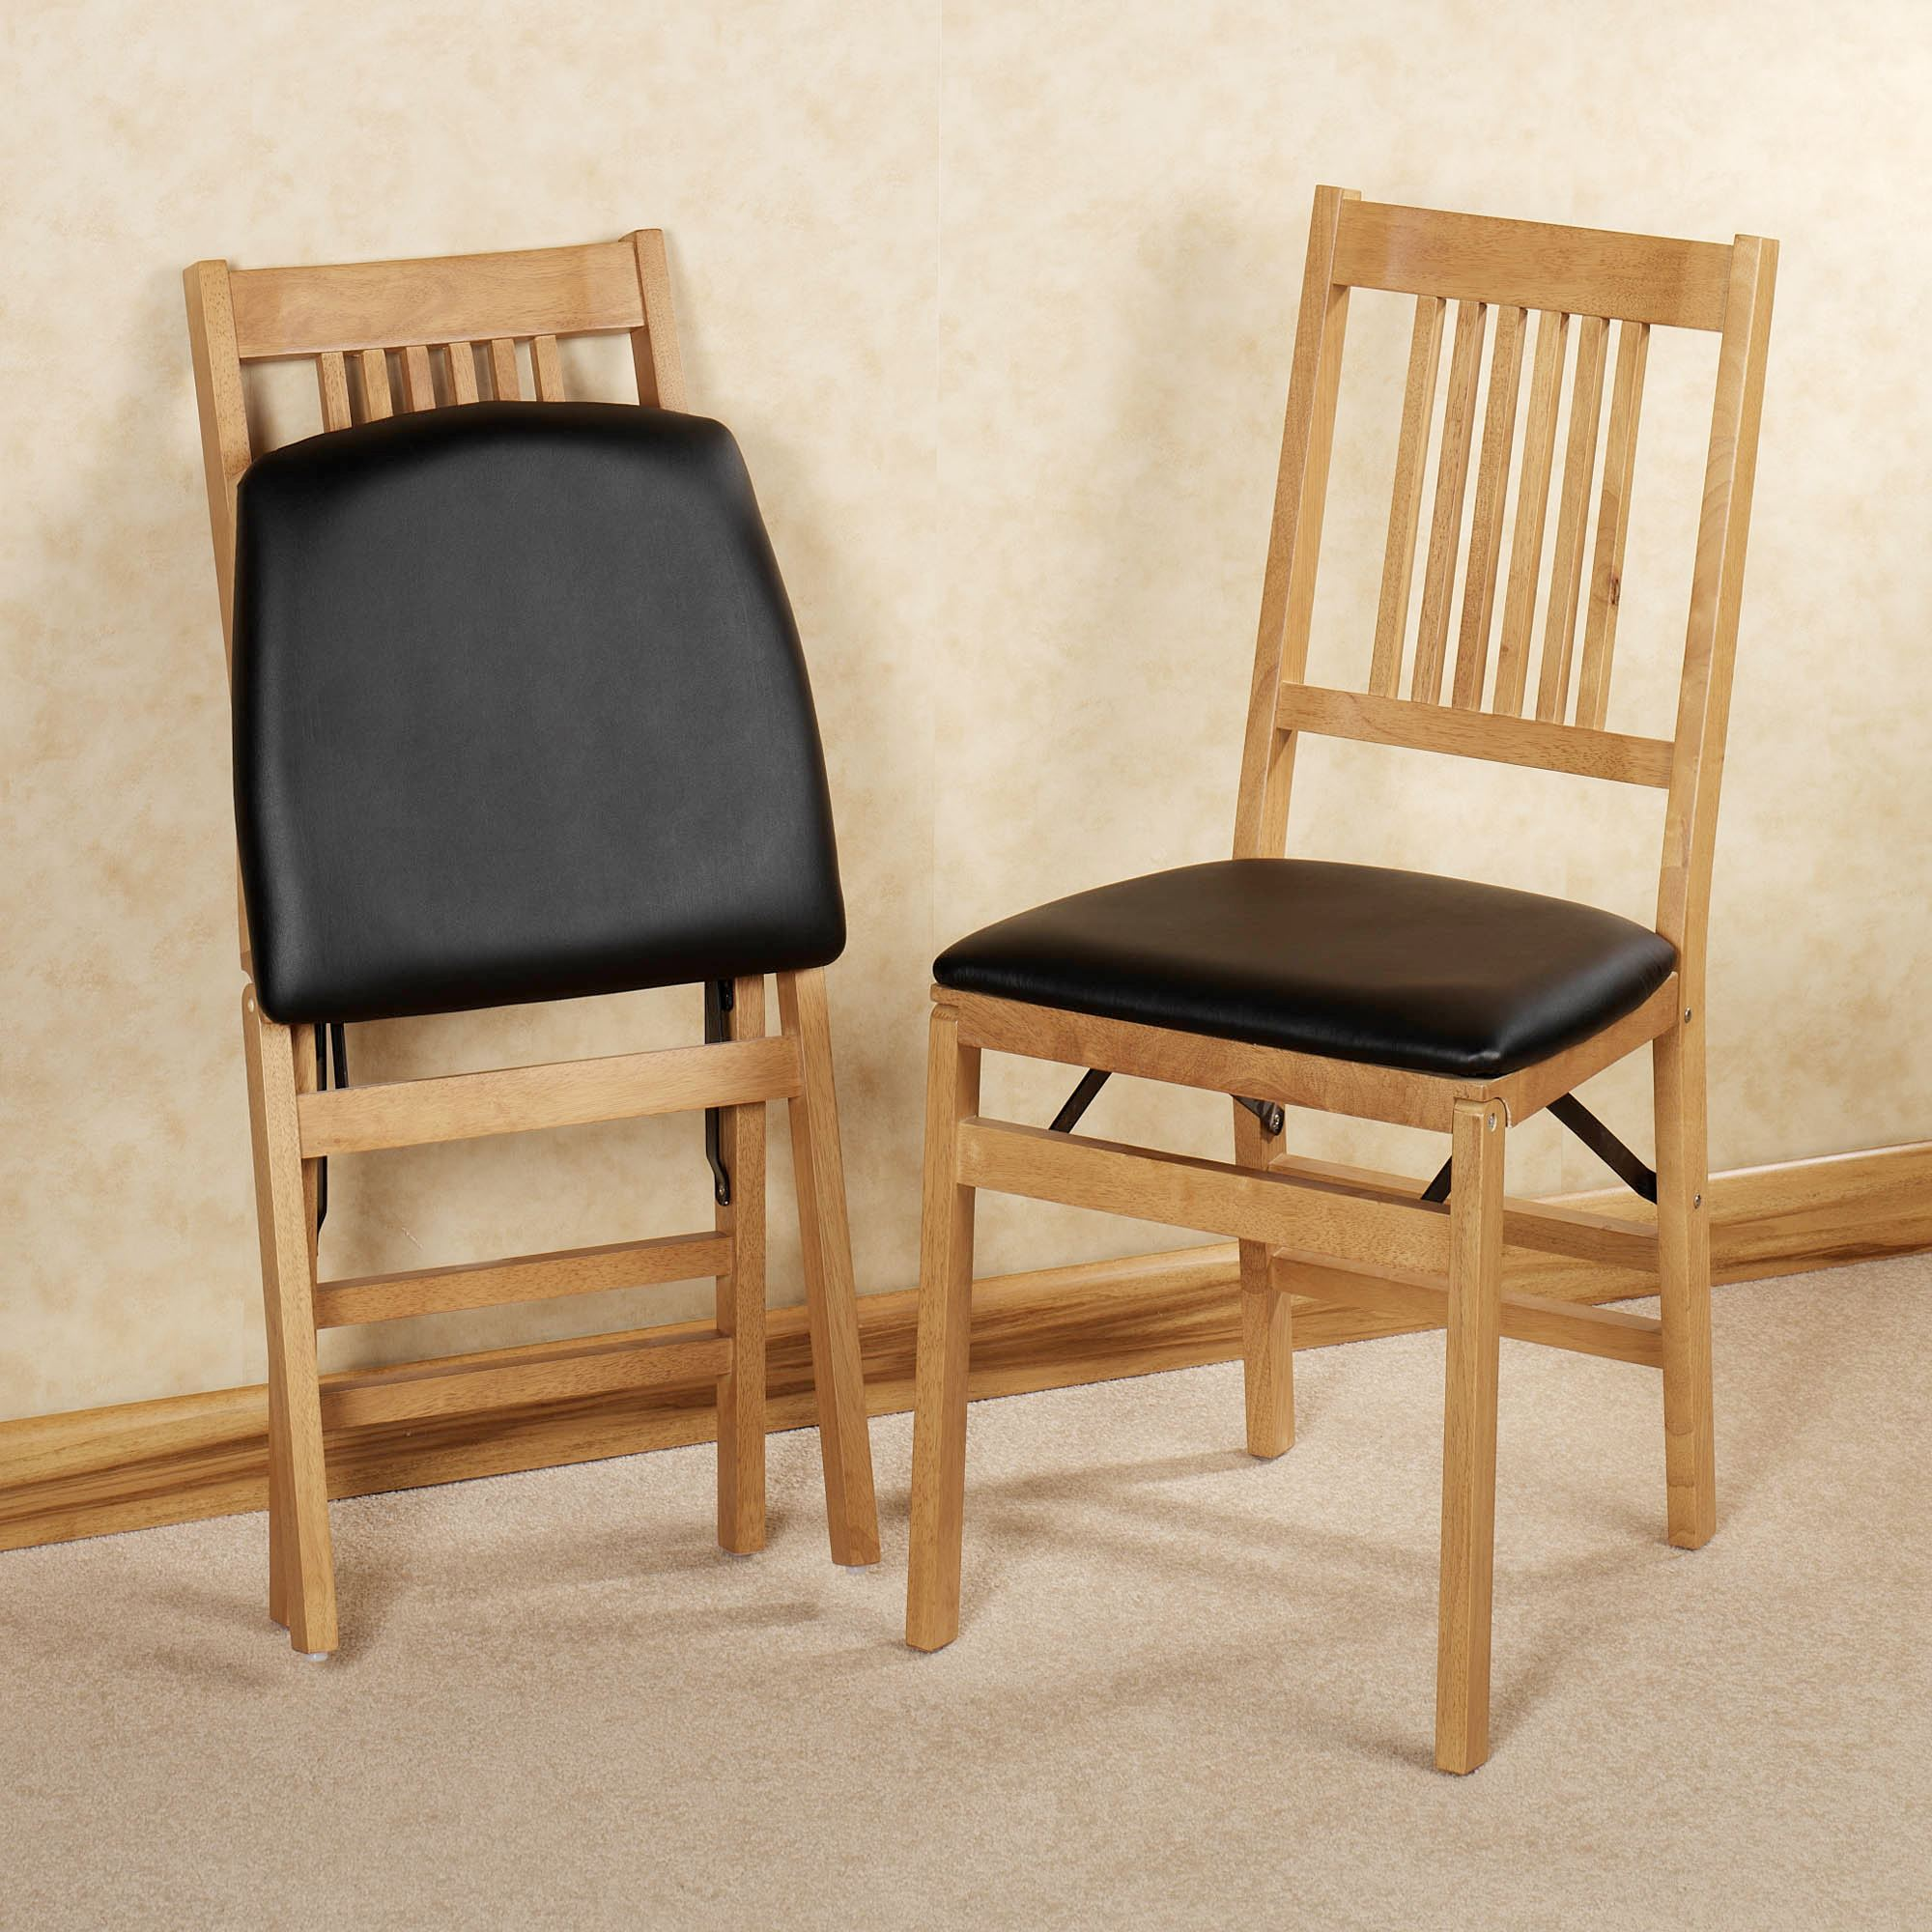 Mission Folding Chair Pair Pair & Mission Natural Oak Finish Convertible 3 in 1 Table